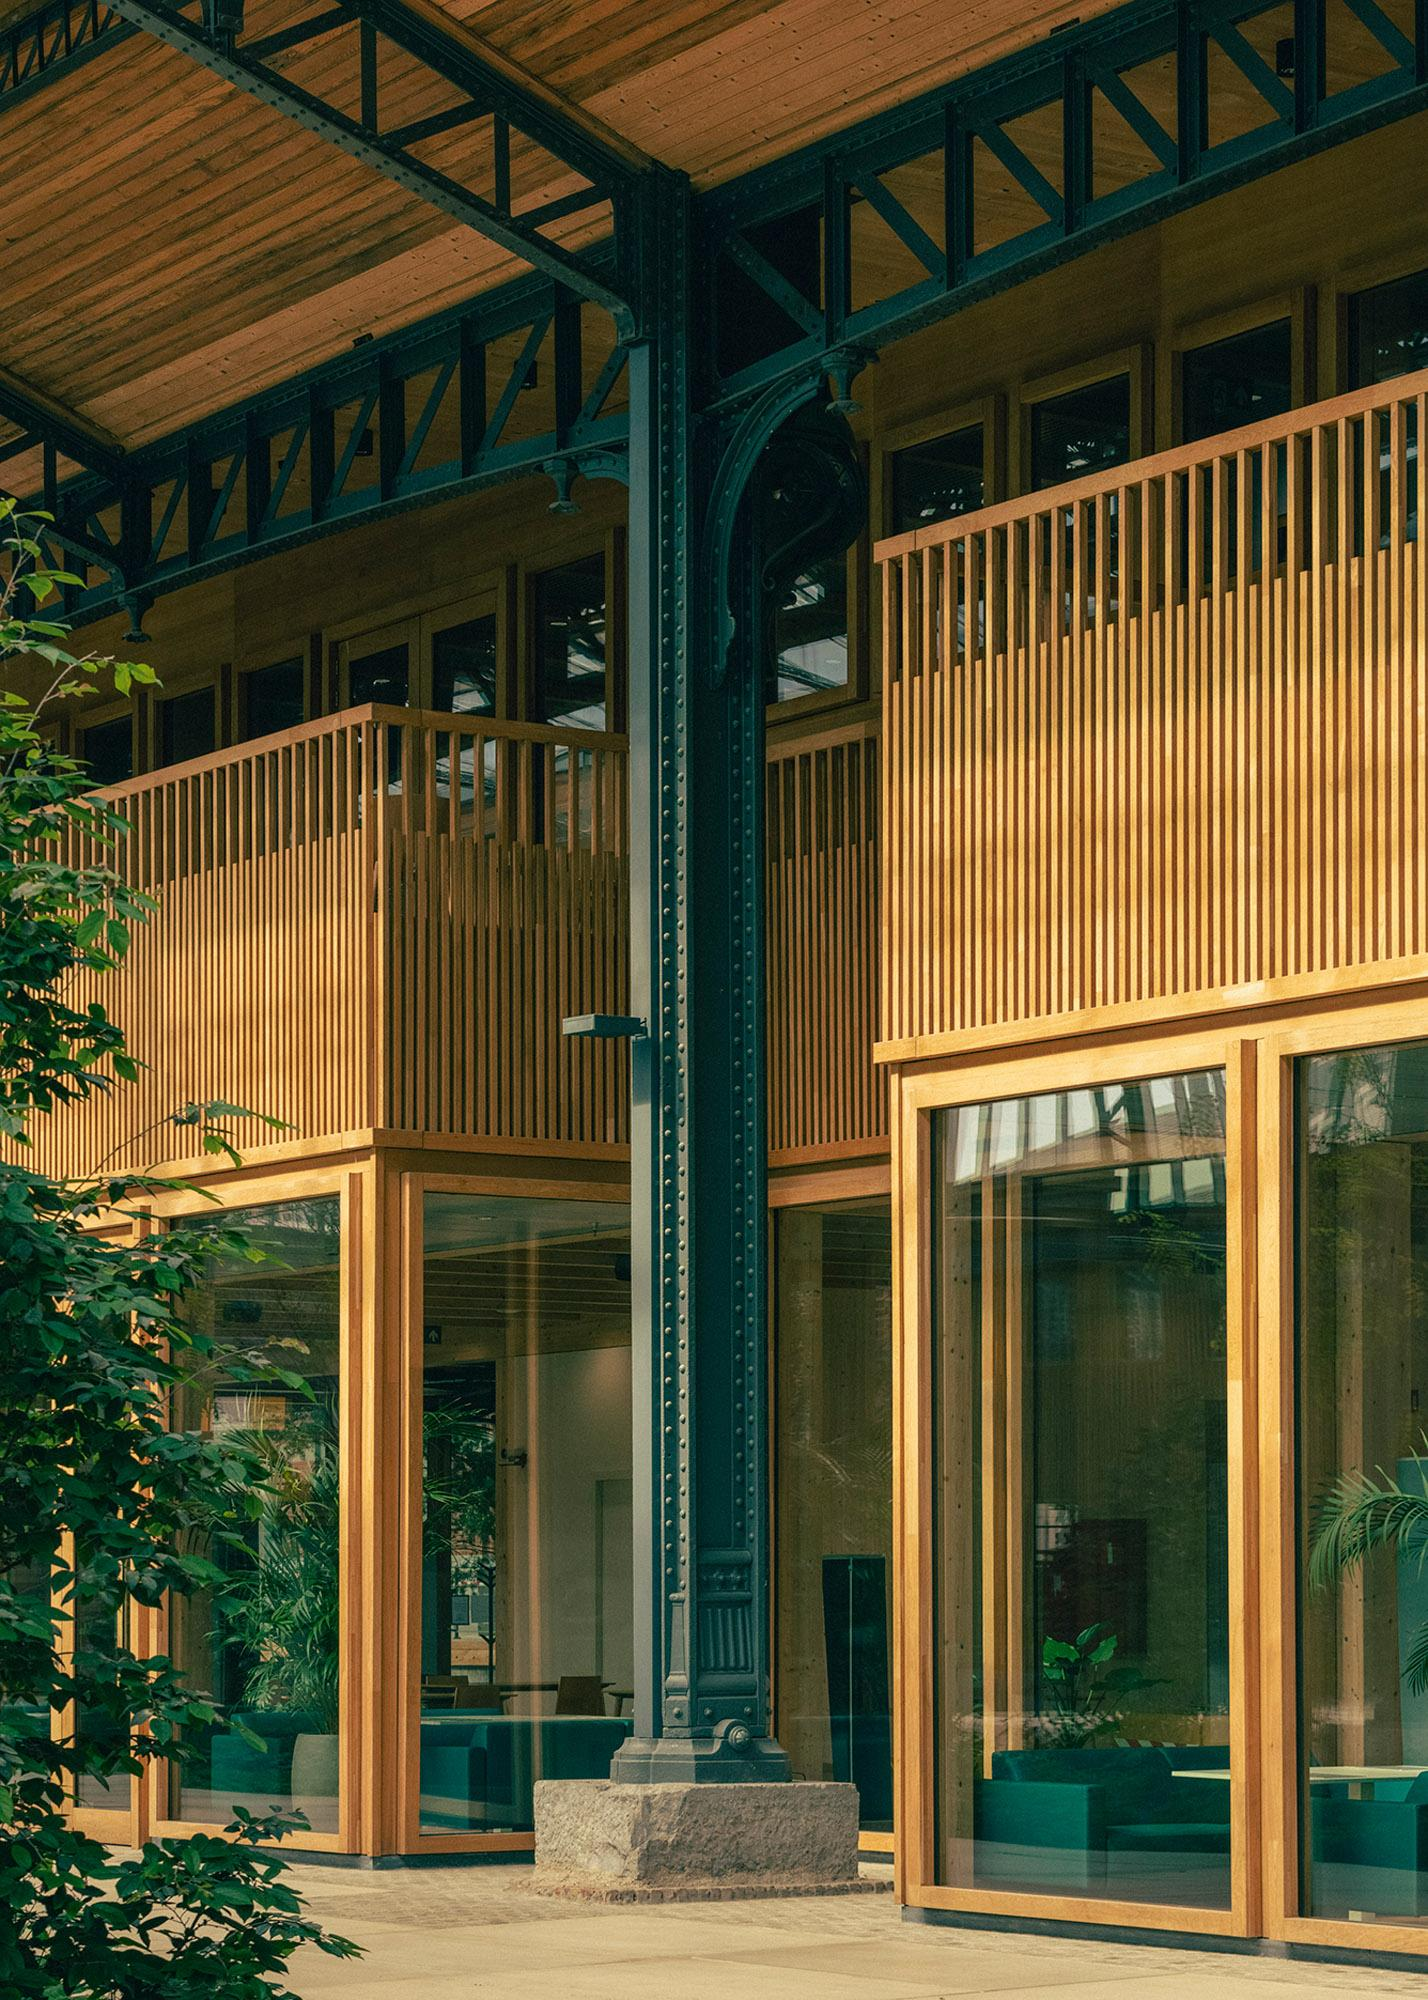 detail of the timber internal pavilions at Gare Maritime in Brussels